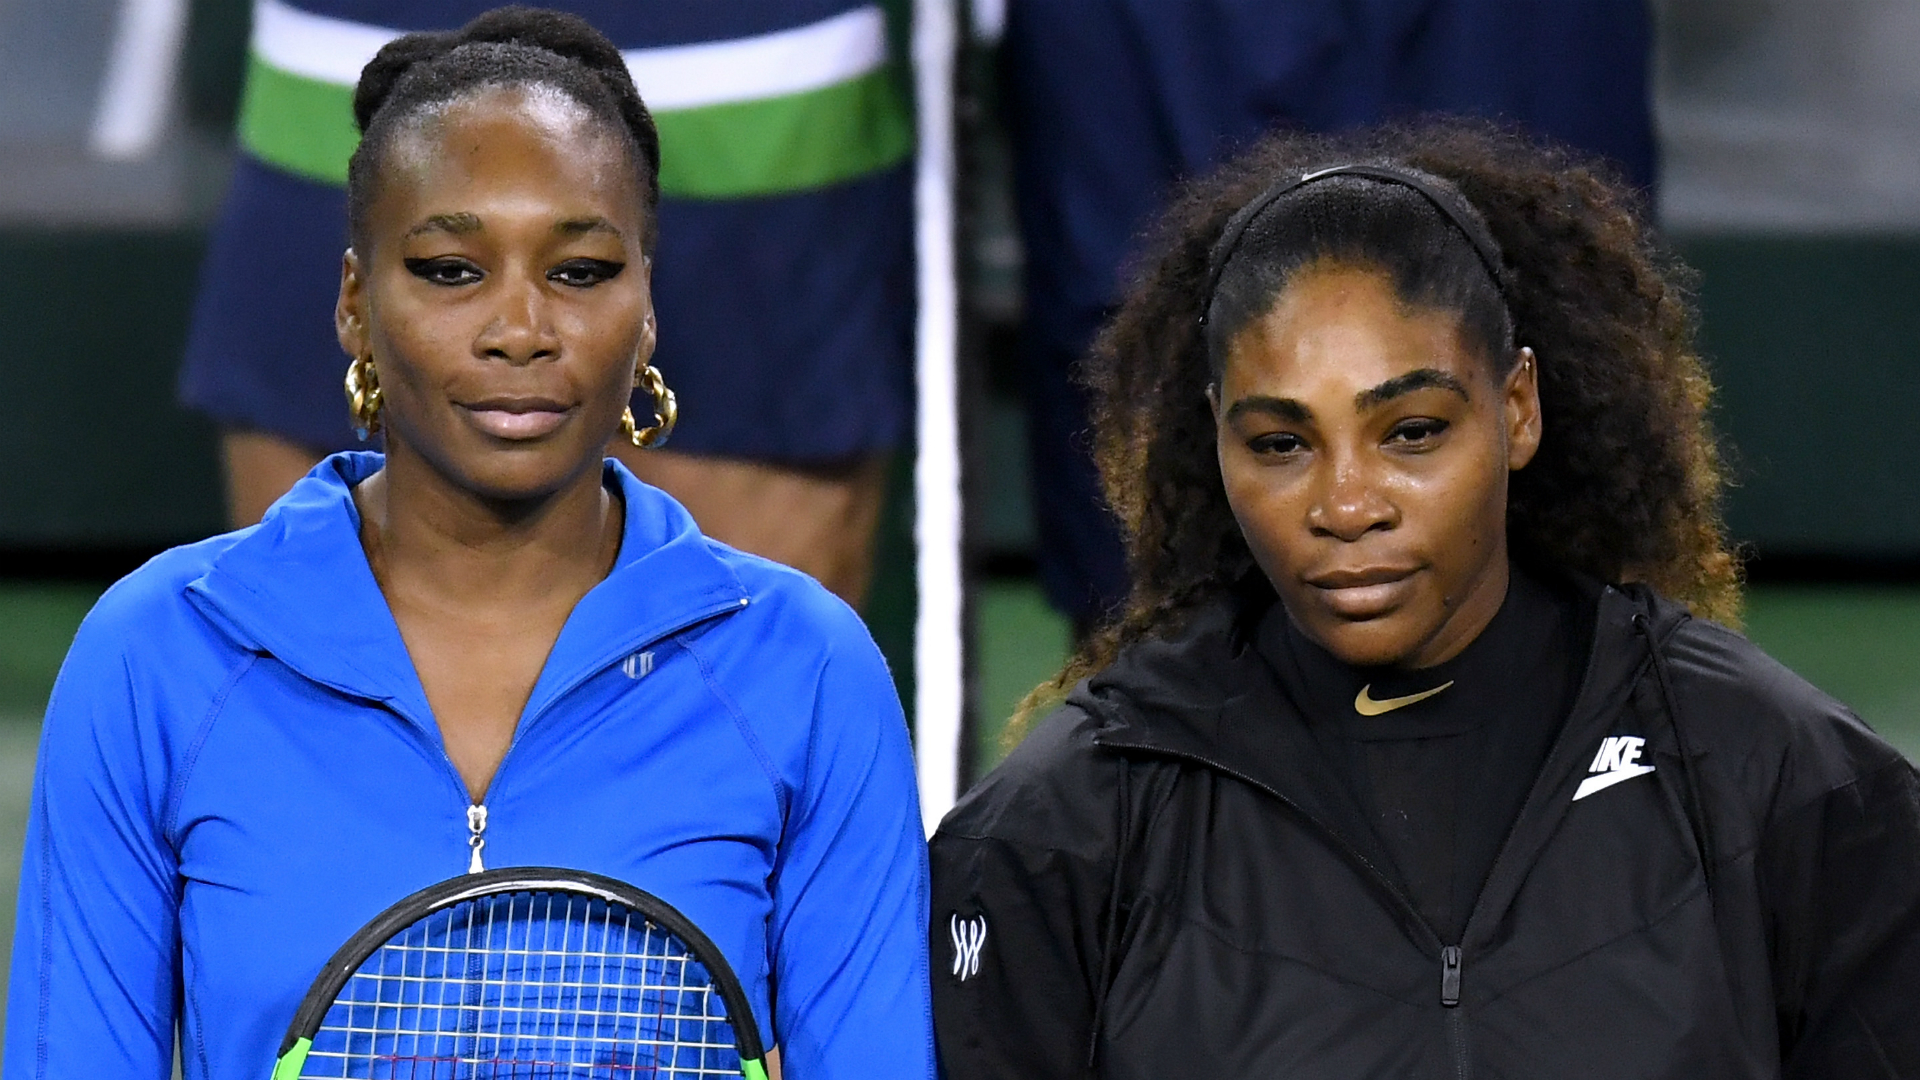 Williams sisters win to set up clash at Indian Wells